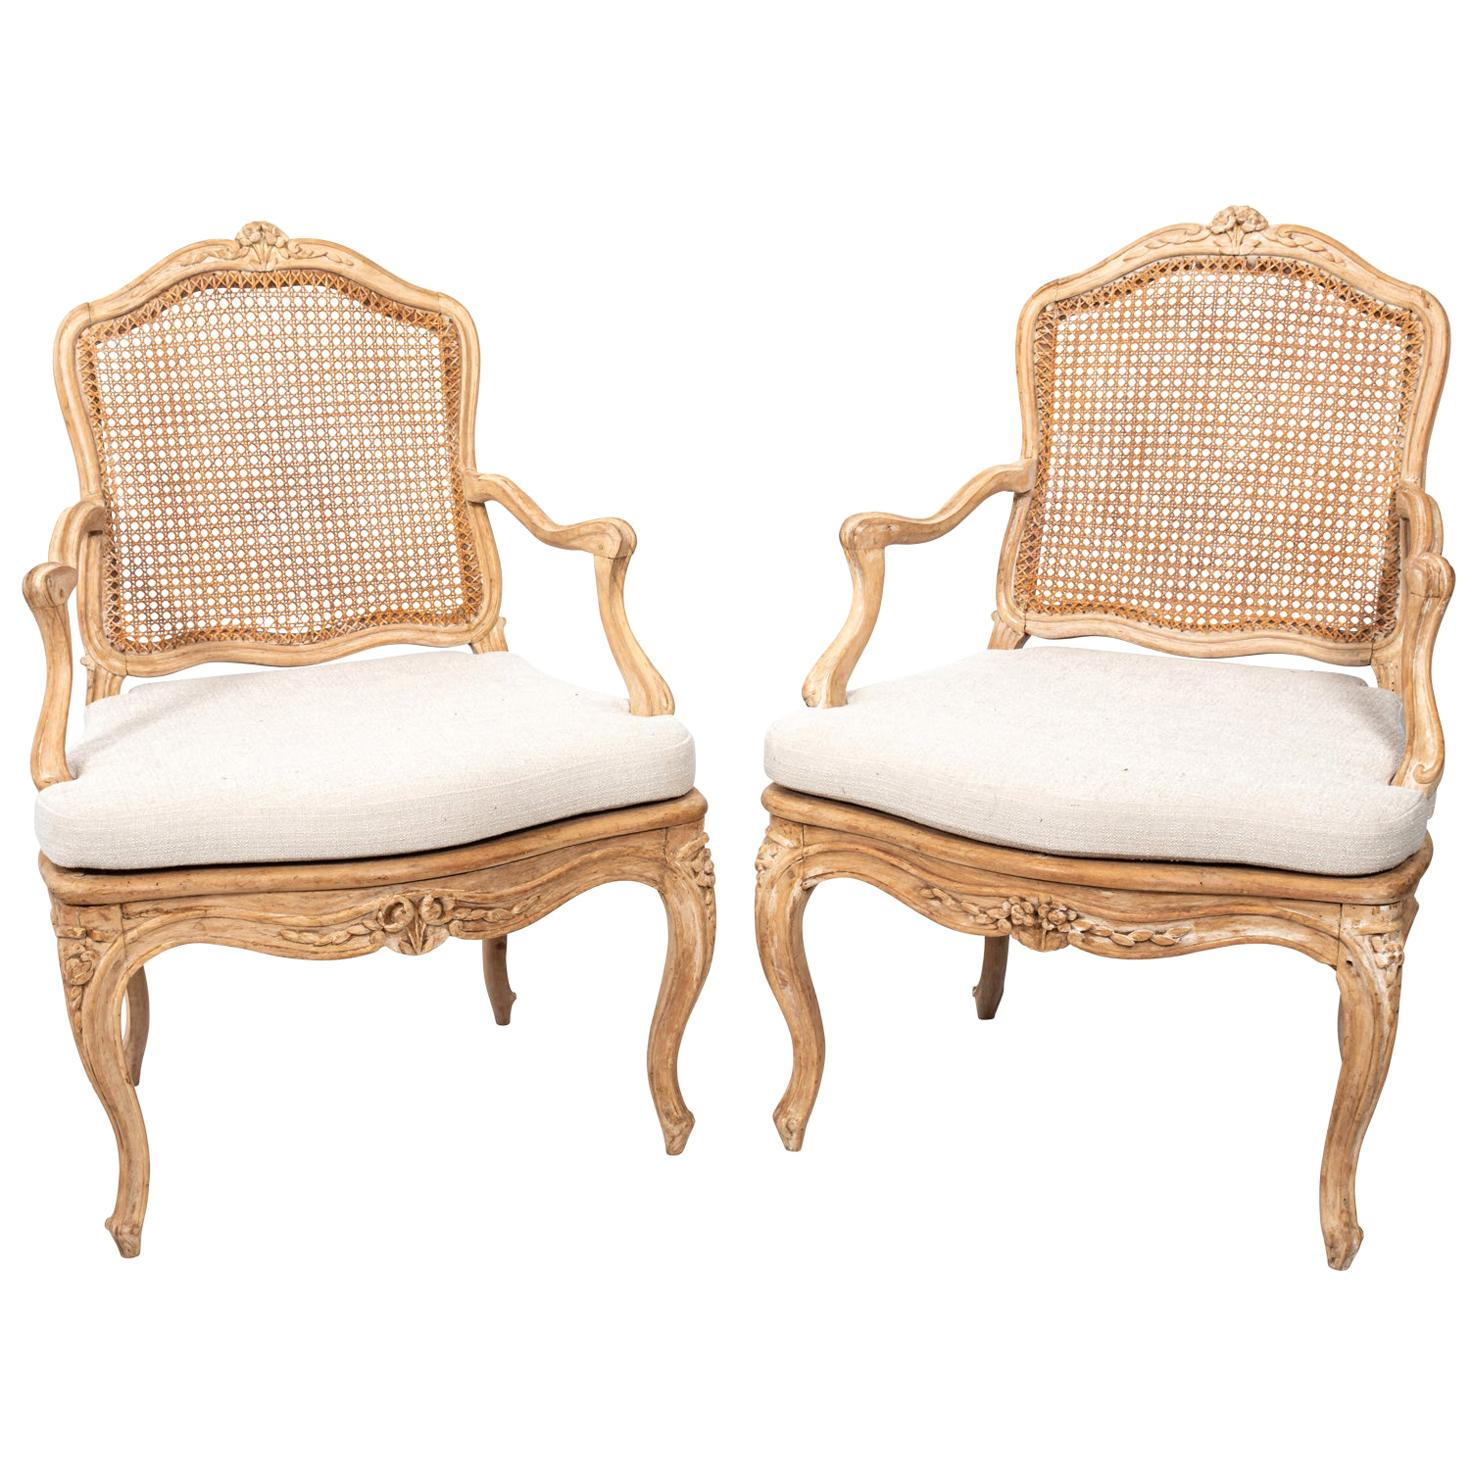 Pair of 18th Century French Armchairs